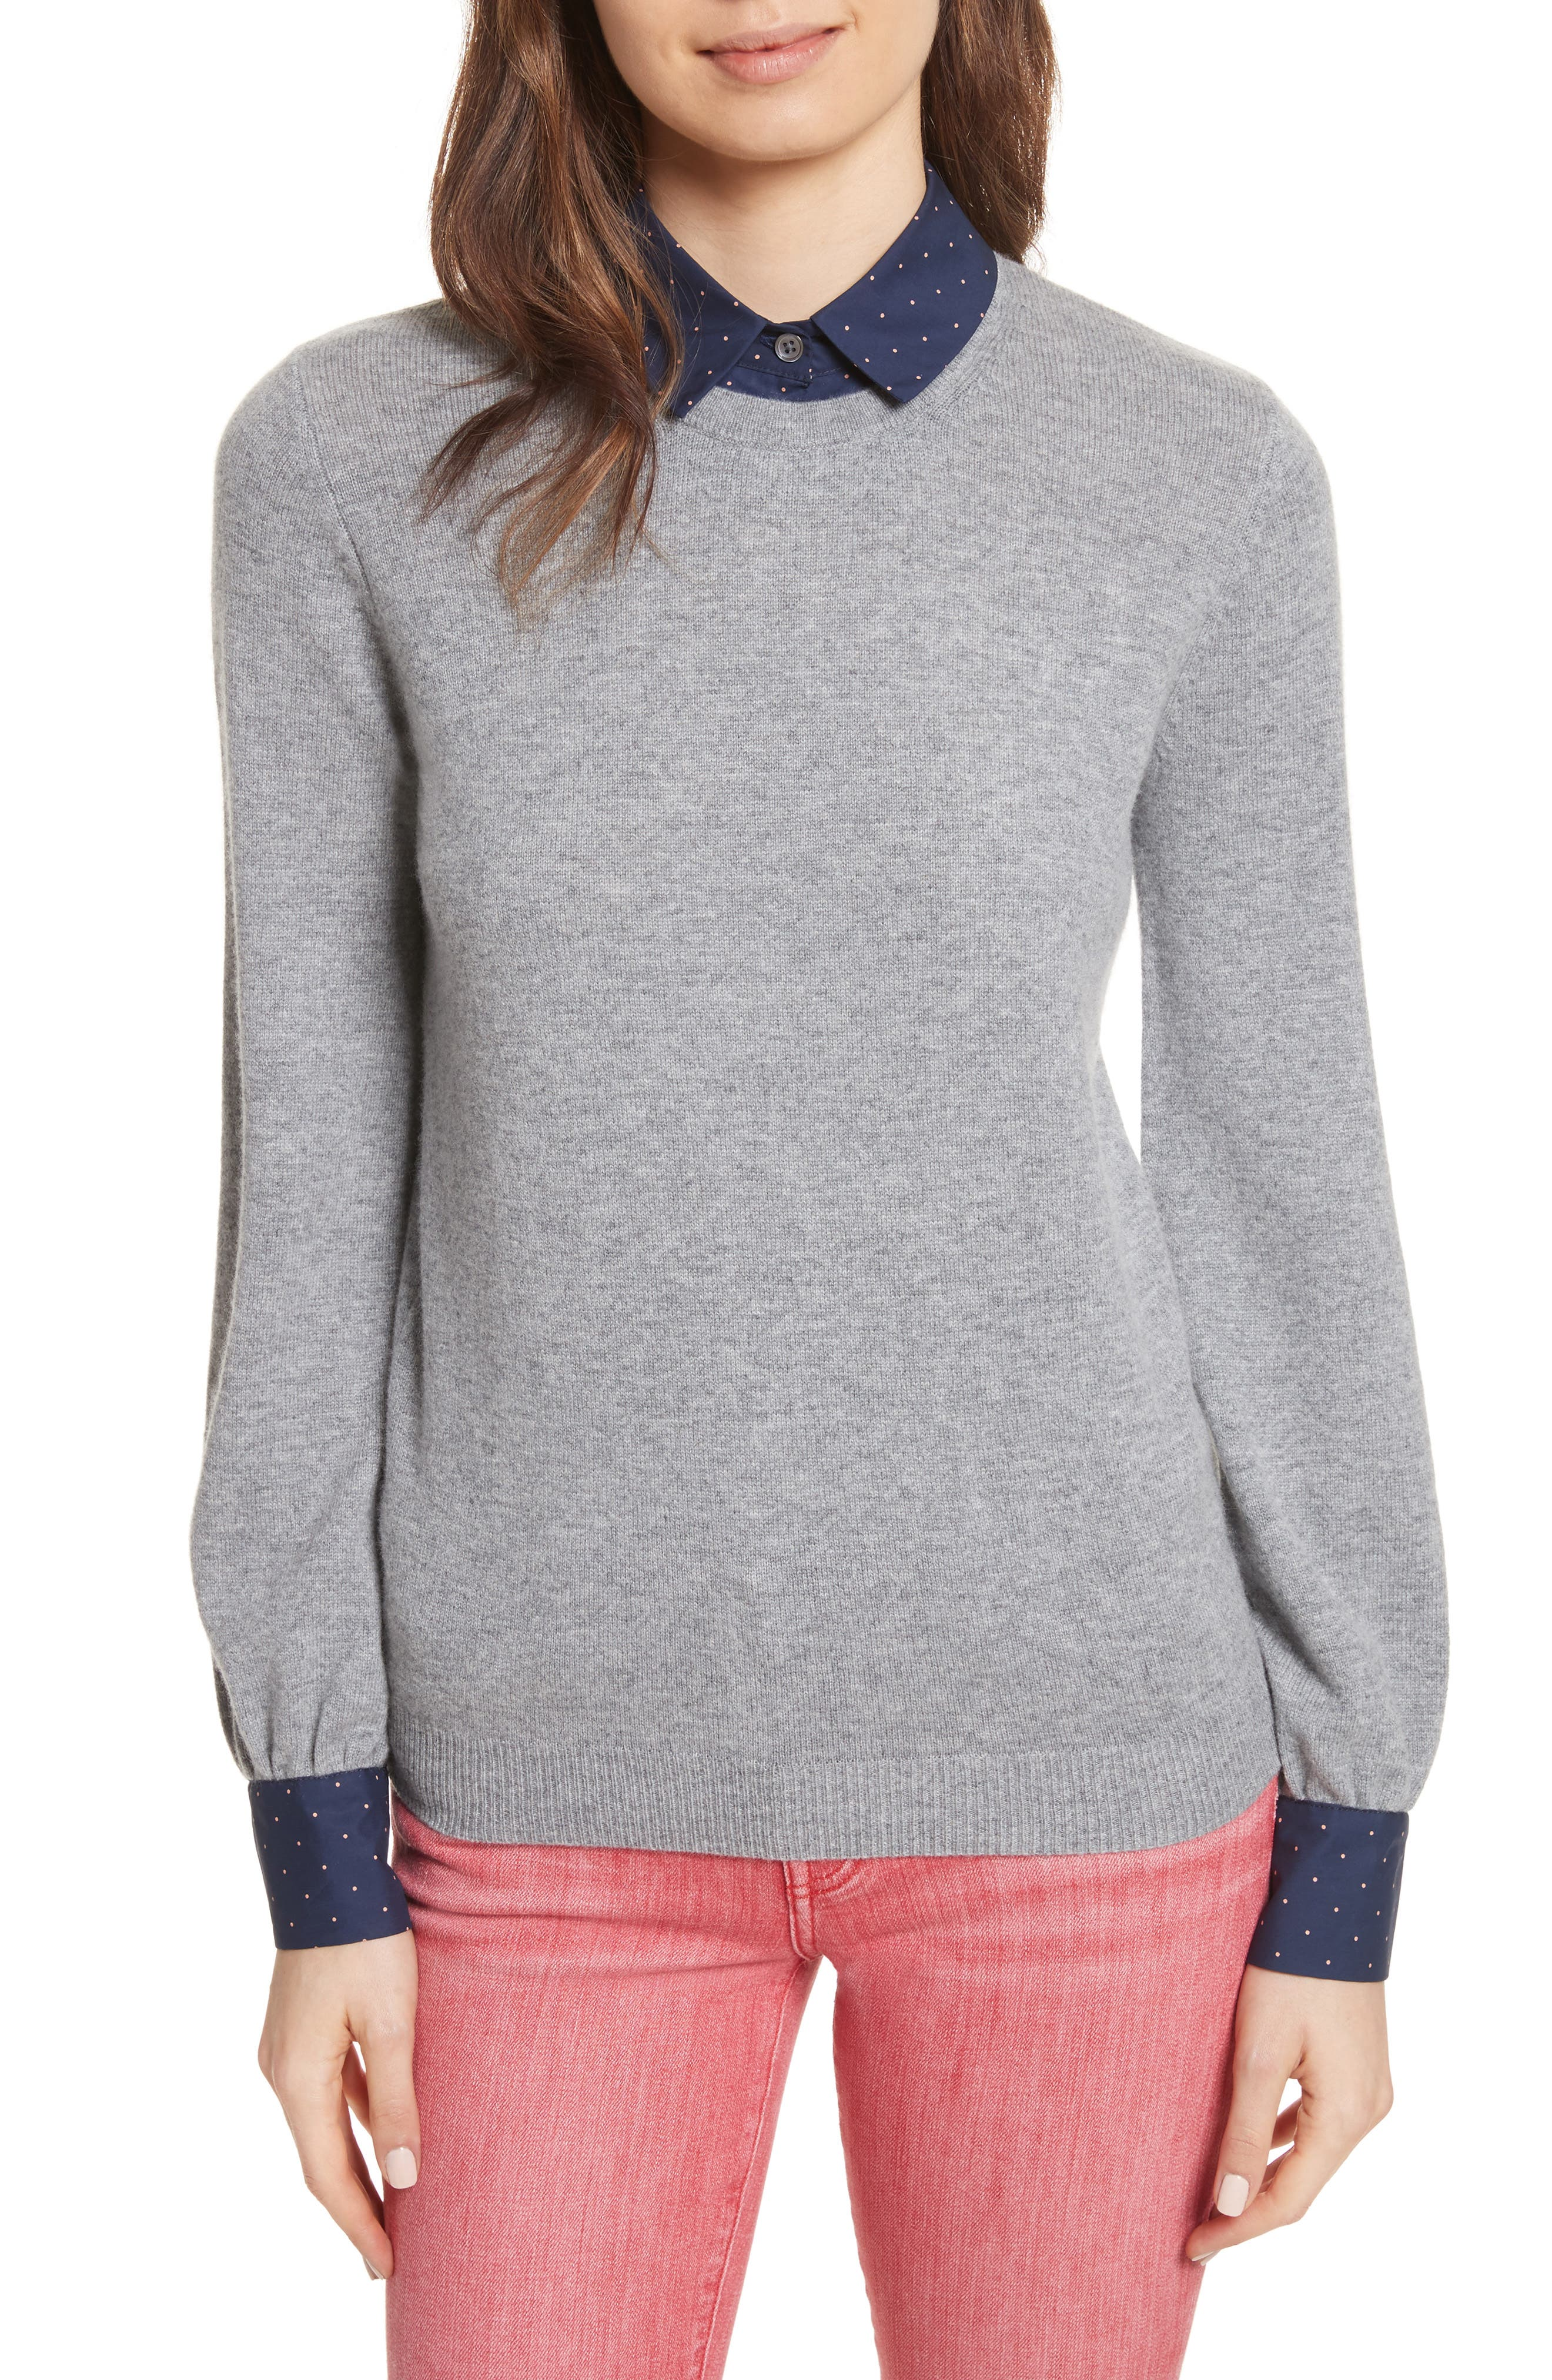 Bahiti Woven Trim Wool & Cashmere Sweater,                         Main,                         color, Heather Grey/ Dark Navy